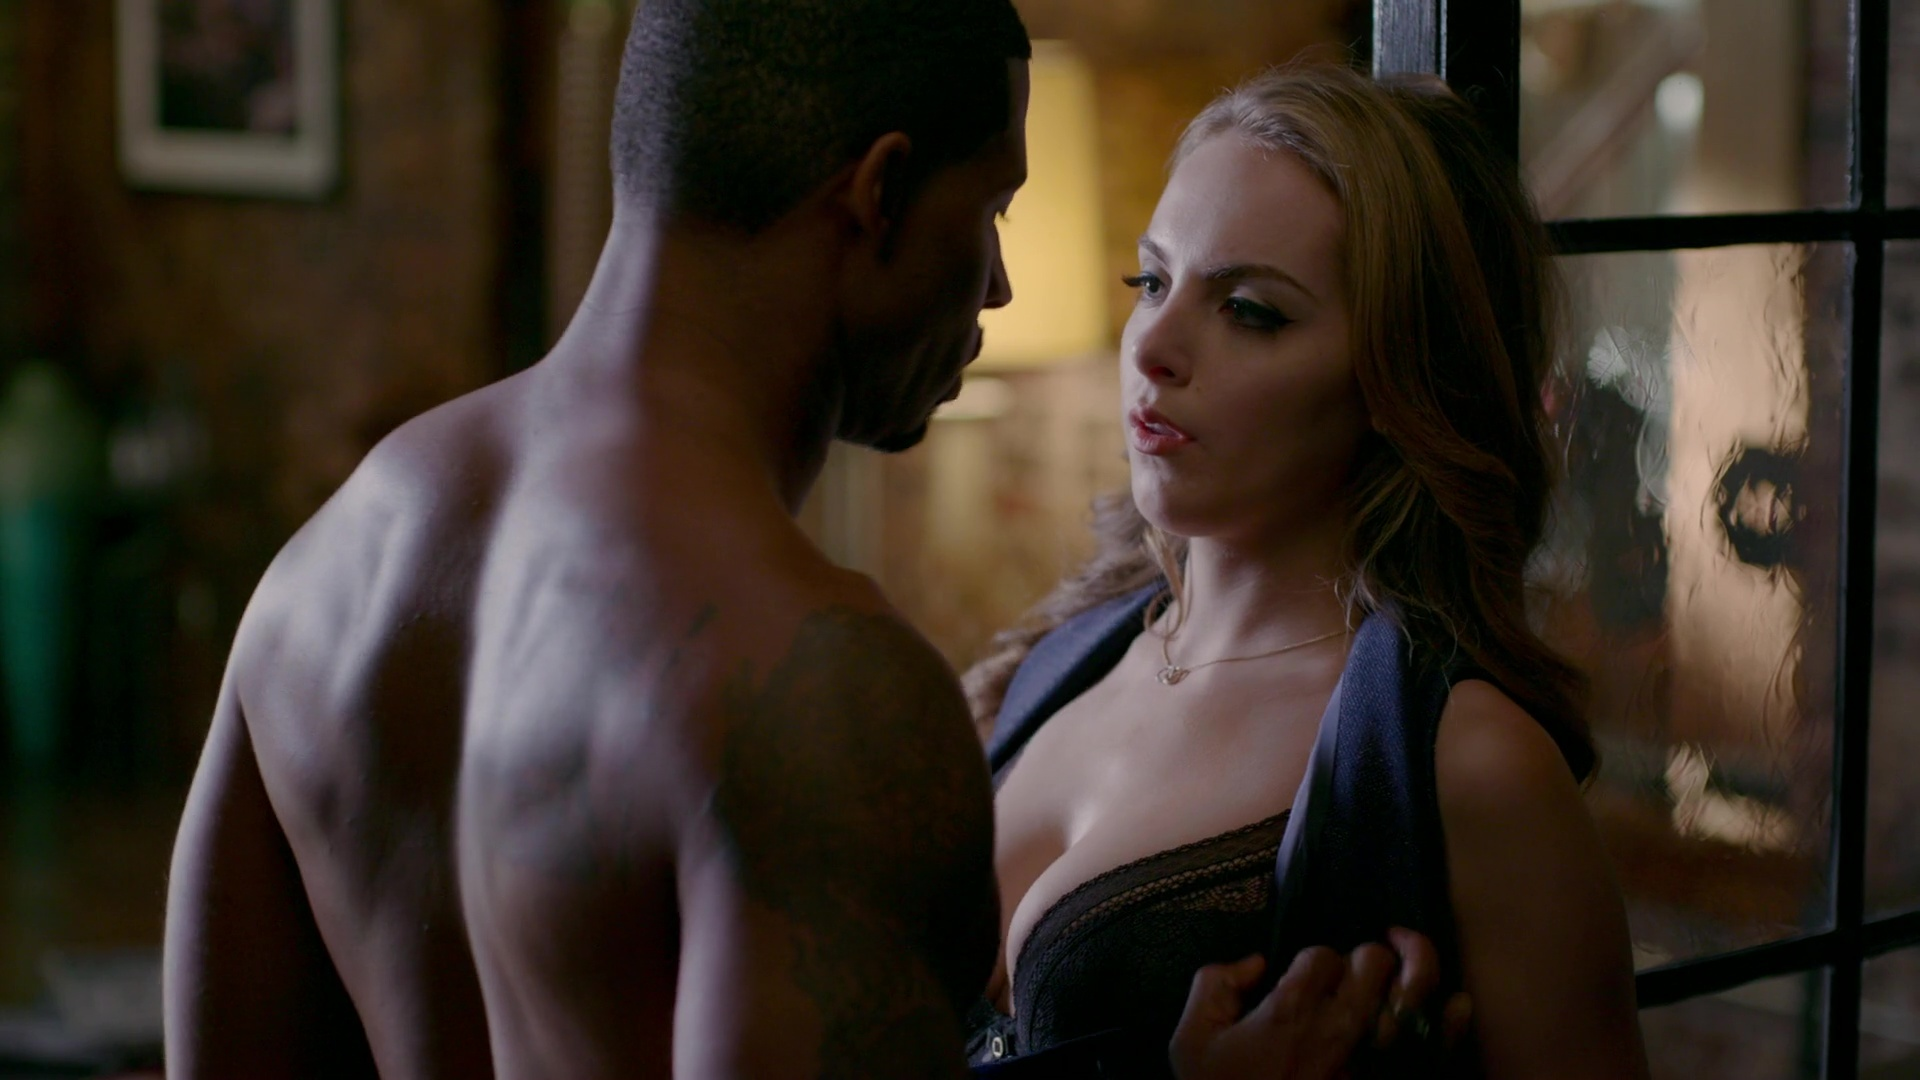 Naked Elizabeth Gillies in Dynasty (II) < ANCENSORED